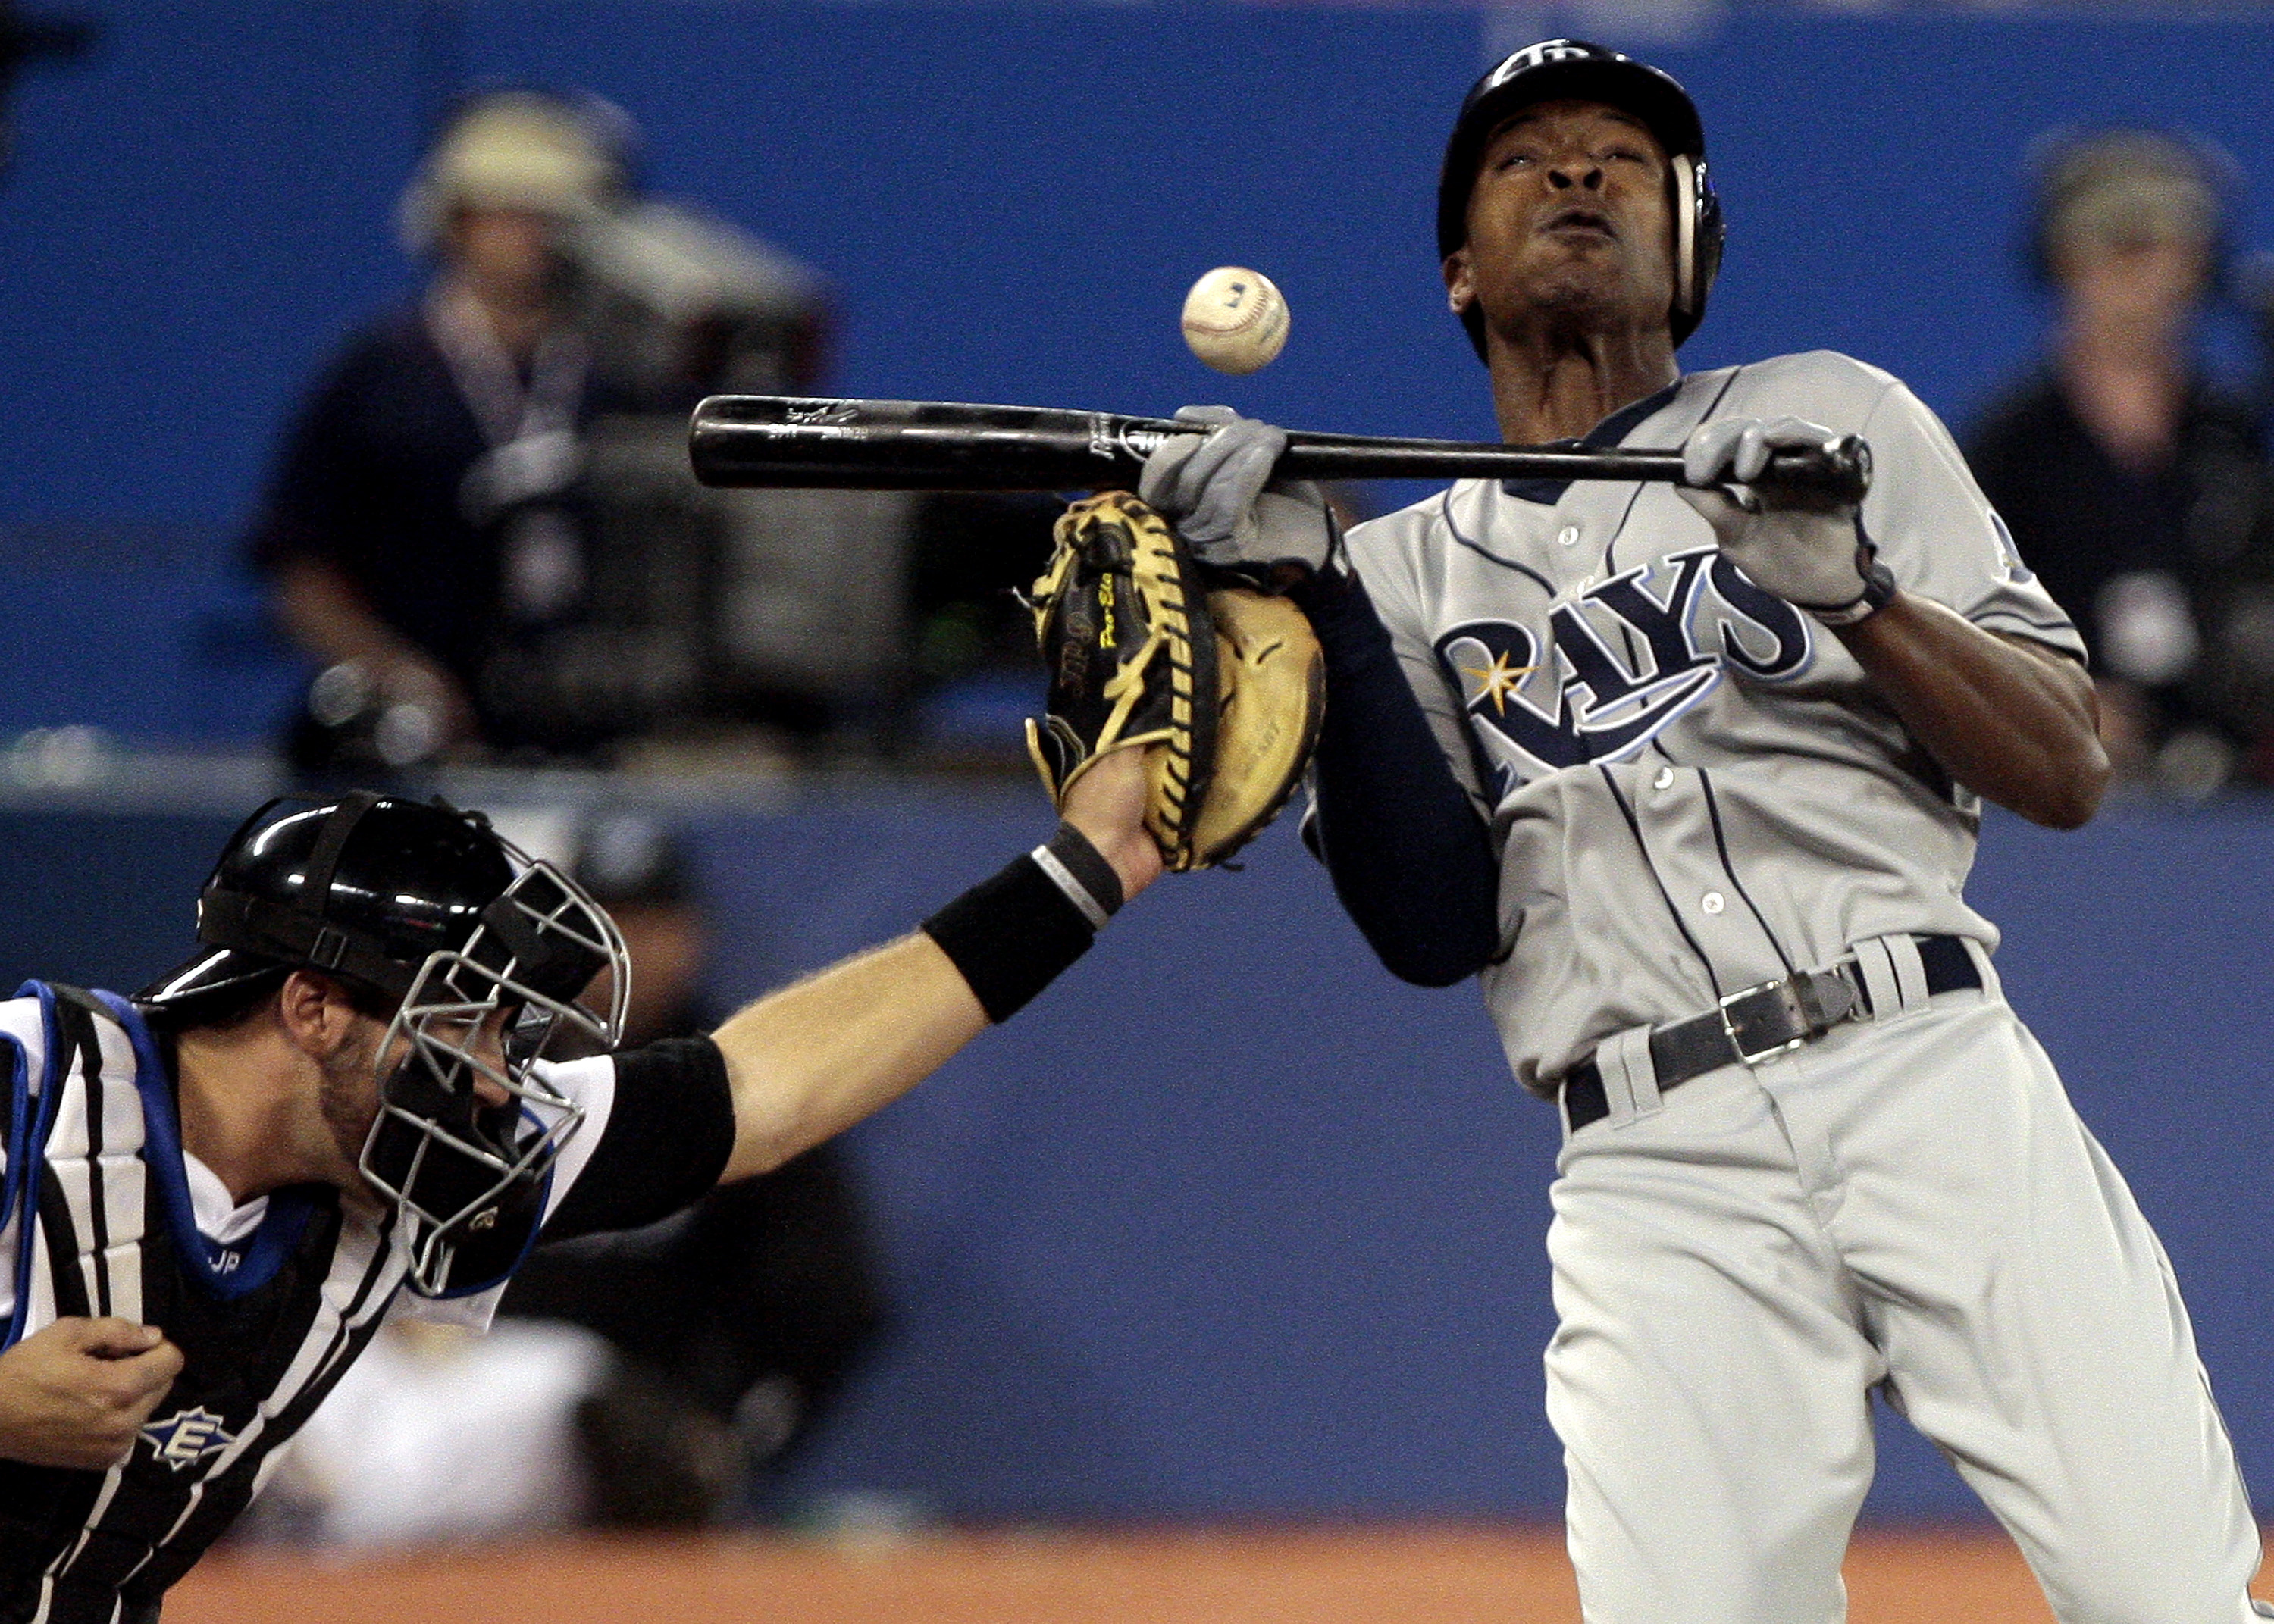 TORONTO, CANADA - MAY 18: B.J. Upton #2 of the Tampa Bay Rays gets hit by a Jesse Litsch pitch in front of J.P. Arencibia #9 of the Toronto Blue Jays during MLB action at the Rogers Centre May 18, 2011 in Toronto, Ontario, Canada. (Photo by Abelimages/Get